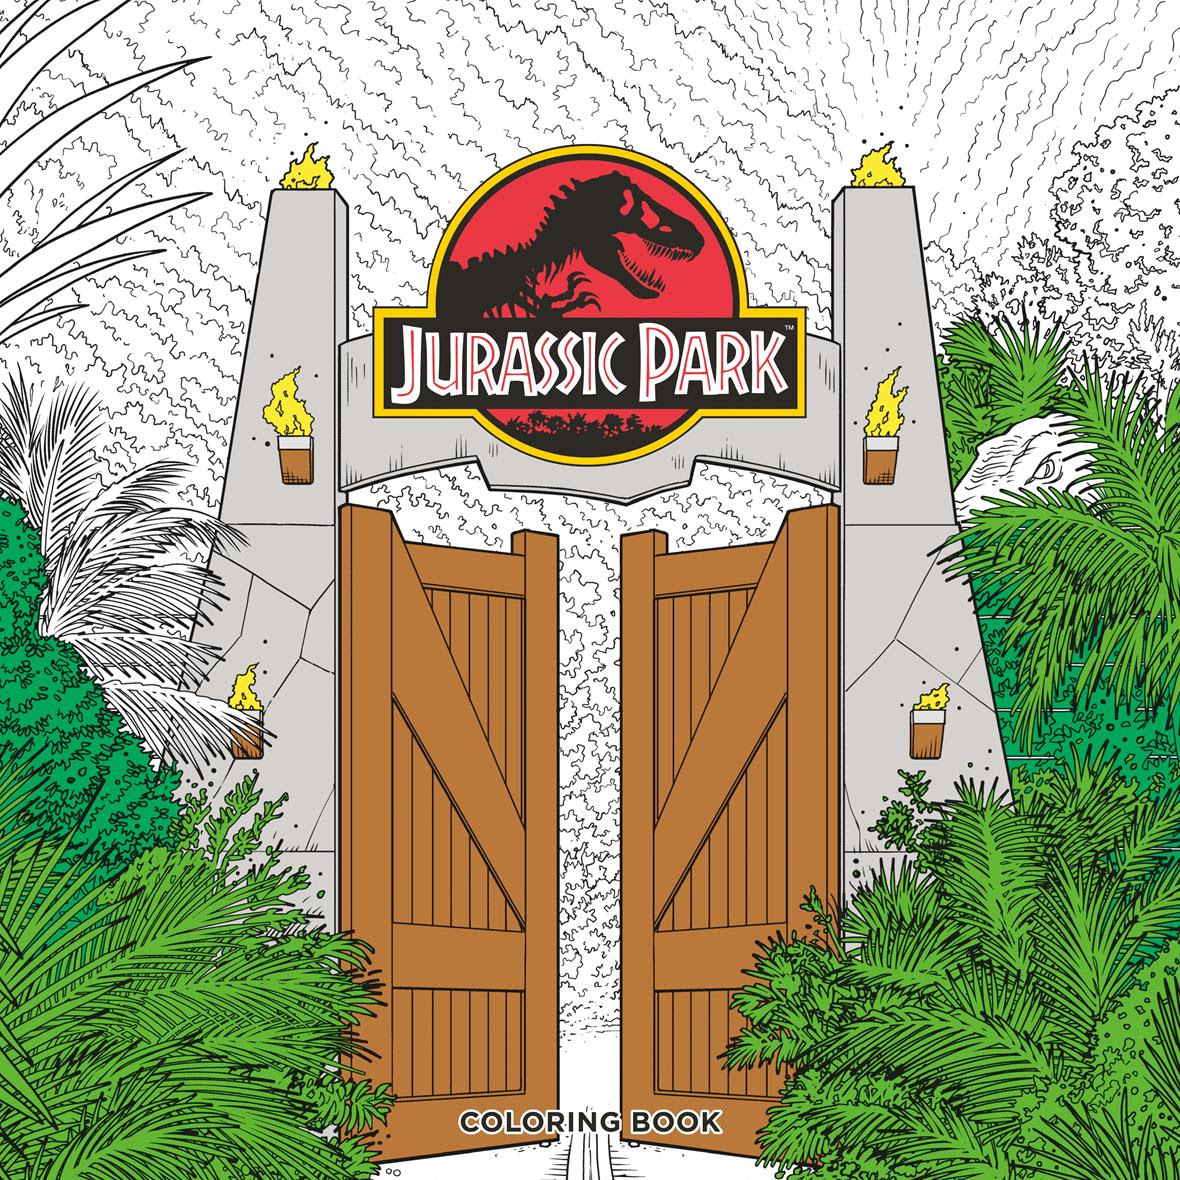 Dark Horse To Publish Jurassic Park And Jurassic World Coloring